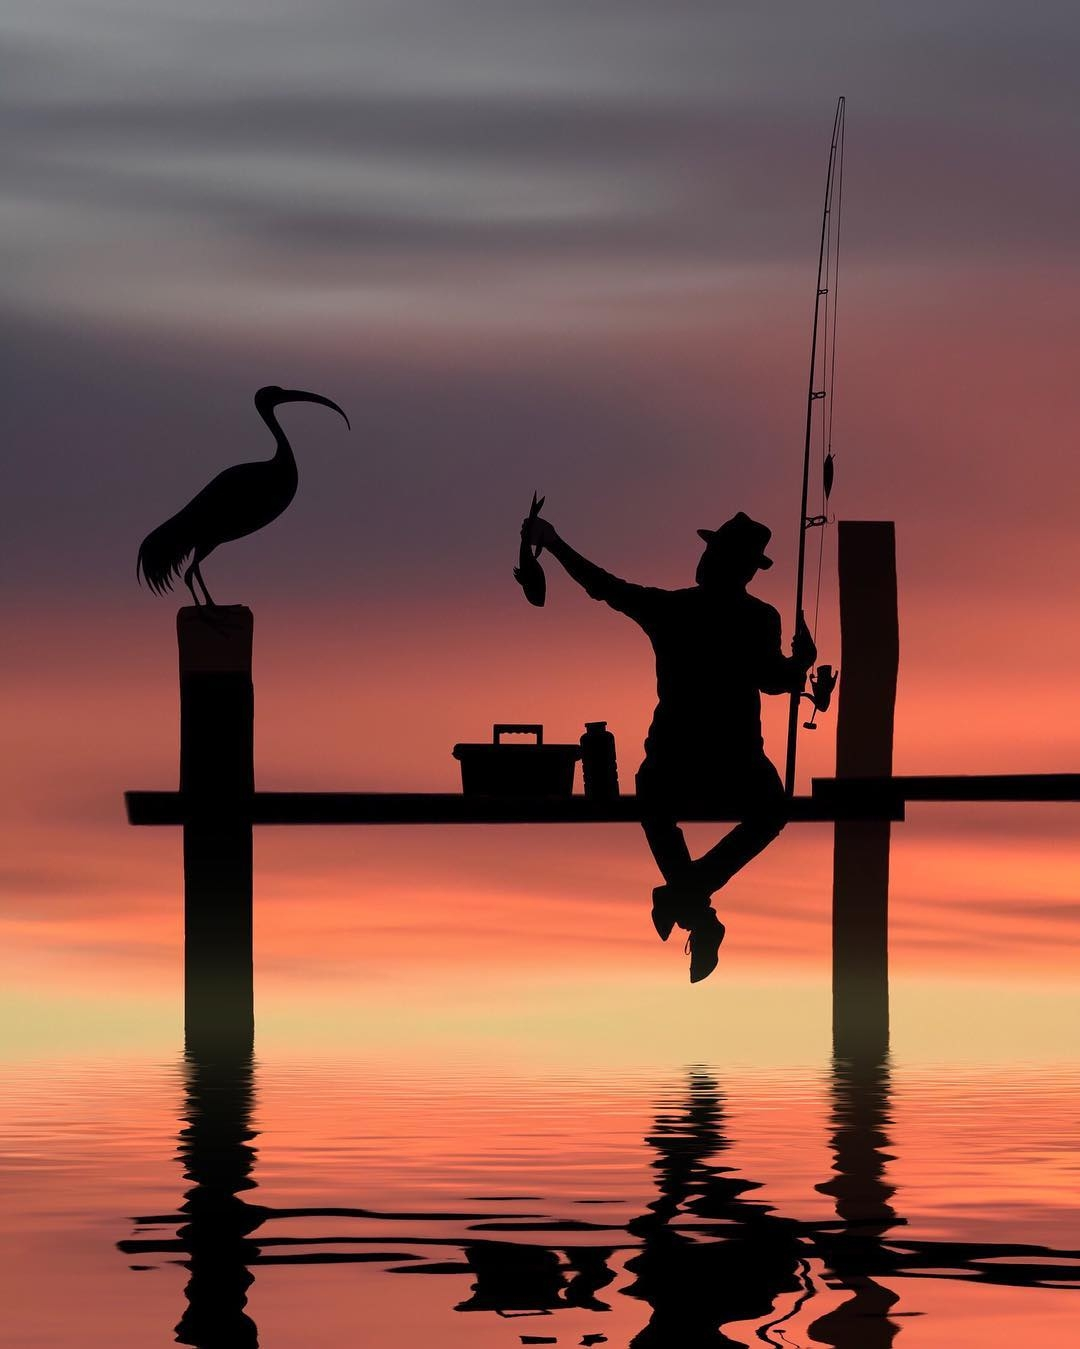 10-Fishing-Dominic-Liam-Beautifully-Manipulated-Pictures-at-Sunrise-www-designstack-co